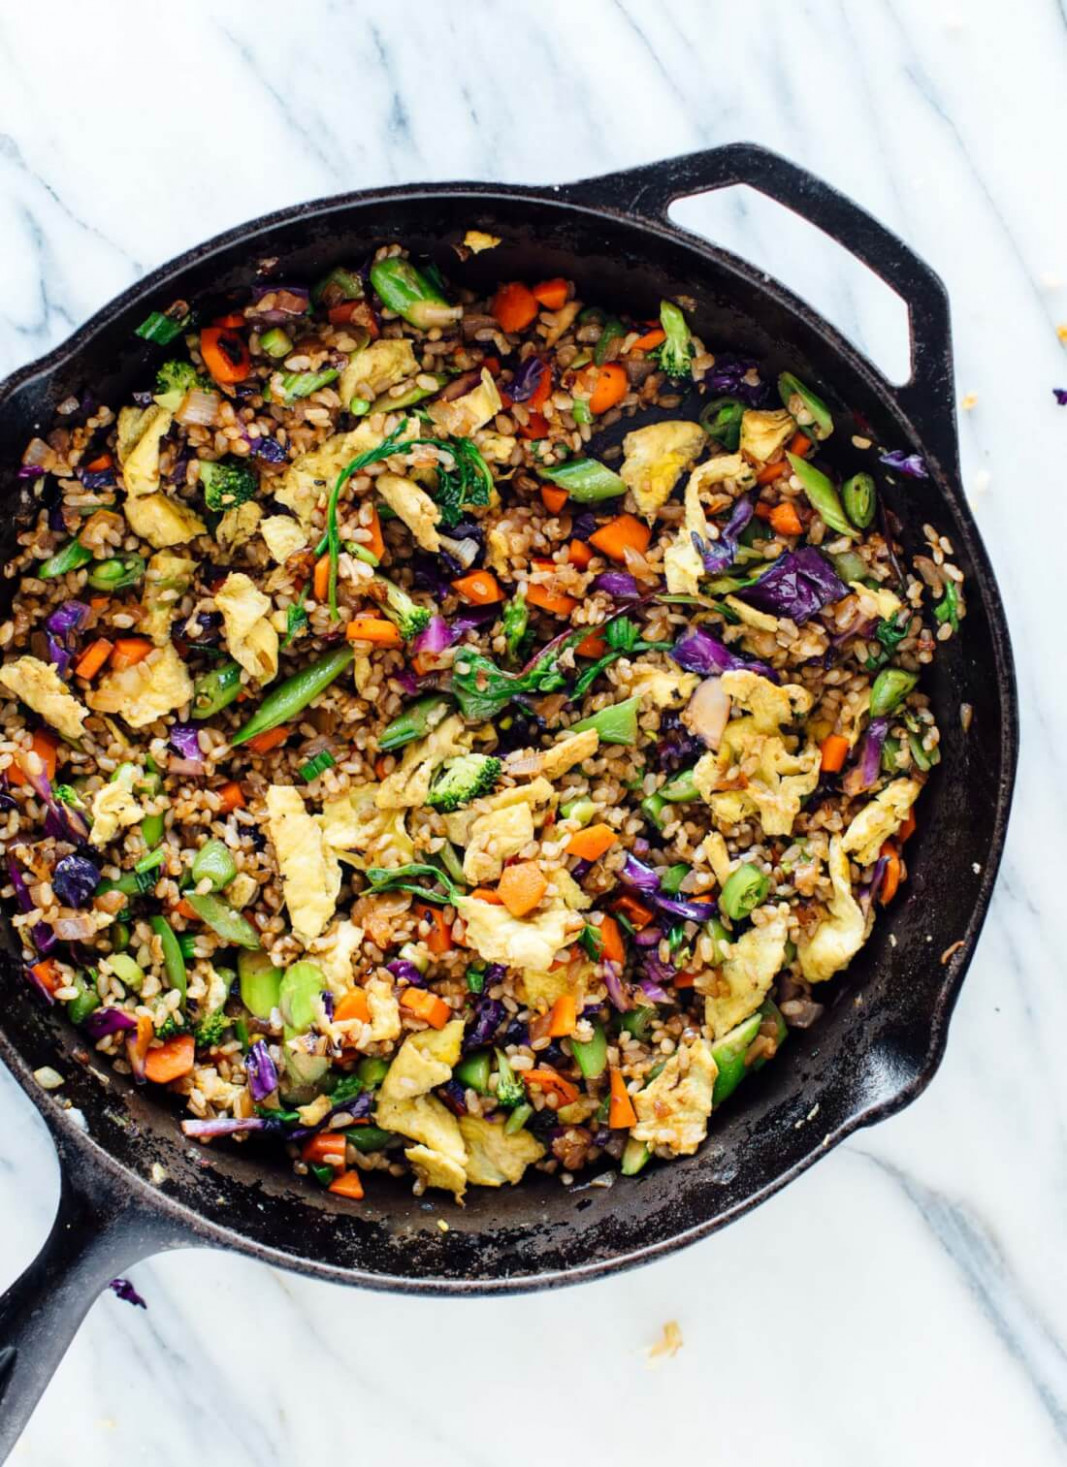 12 Best Vegetarian Recipes - Cookie and Kate